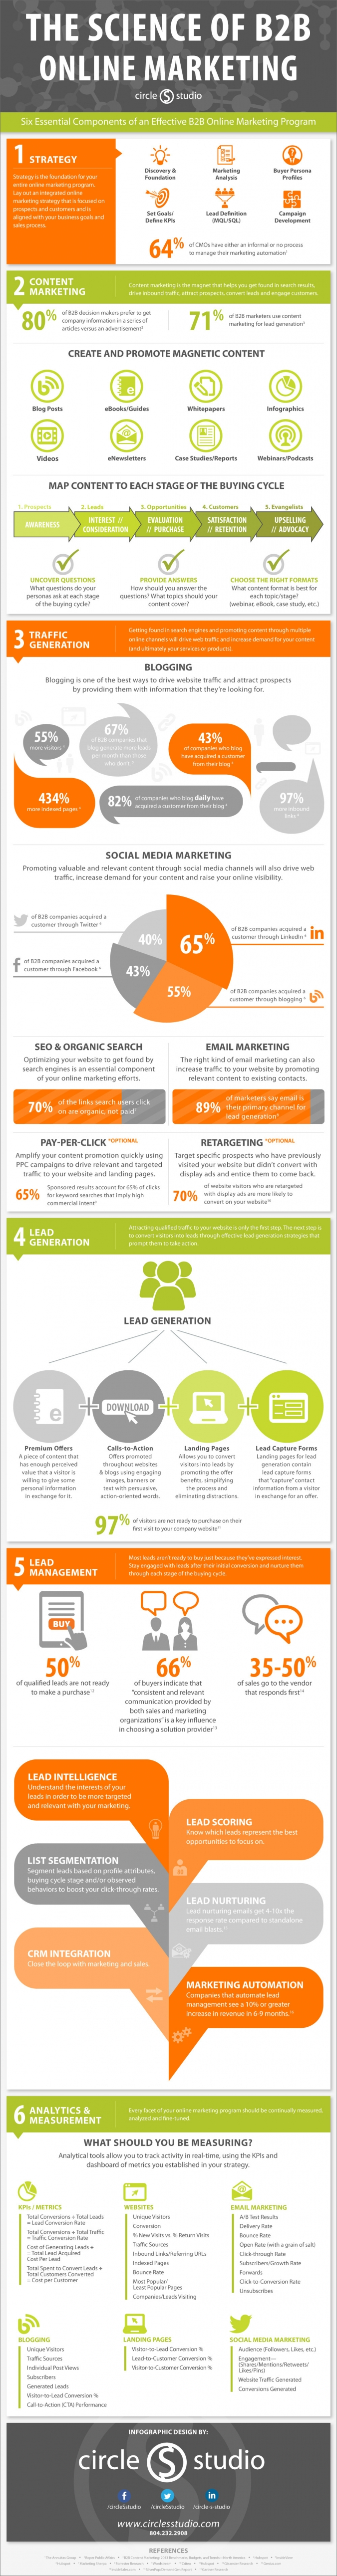 B2B Online Marketing Infografik: B2B Social Media Strategie